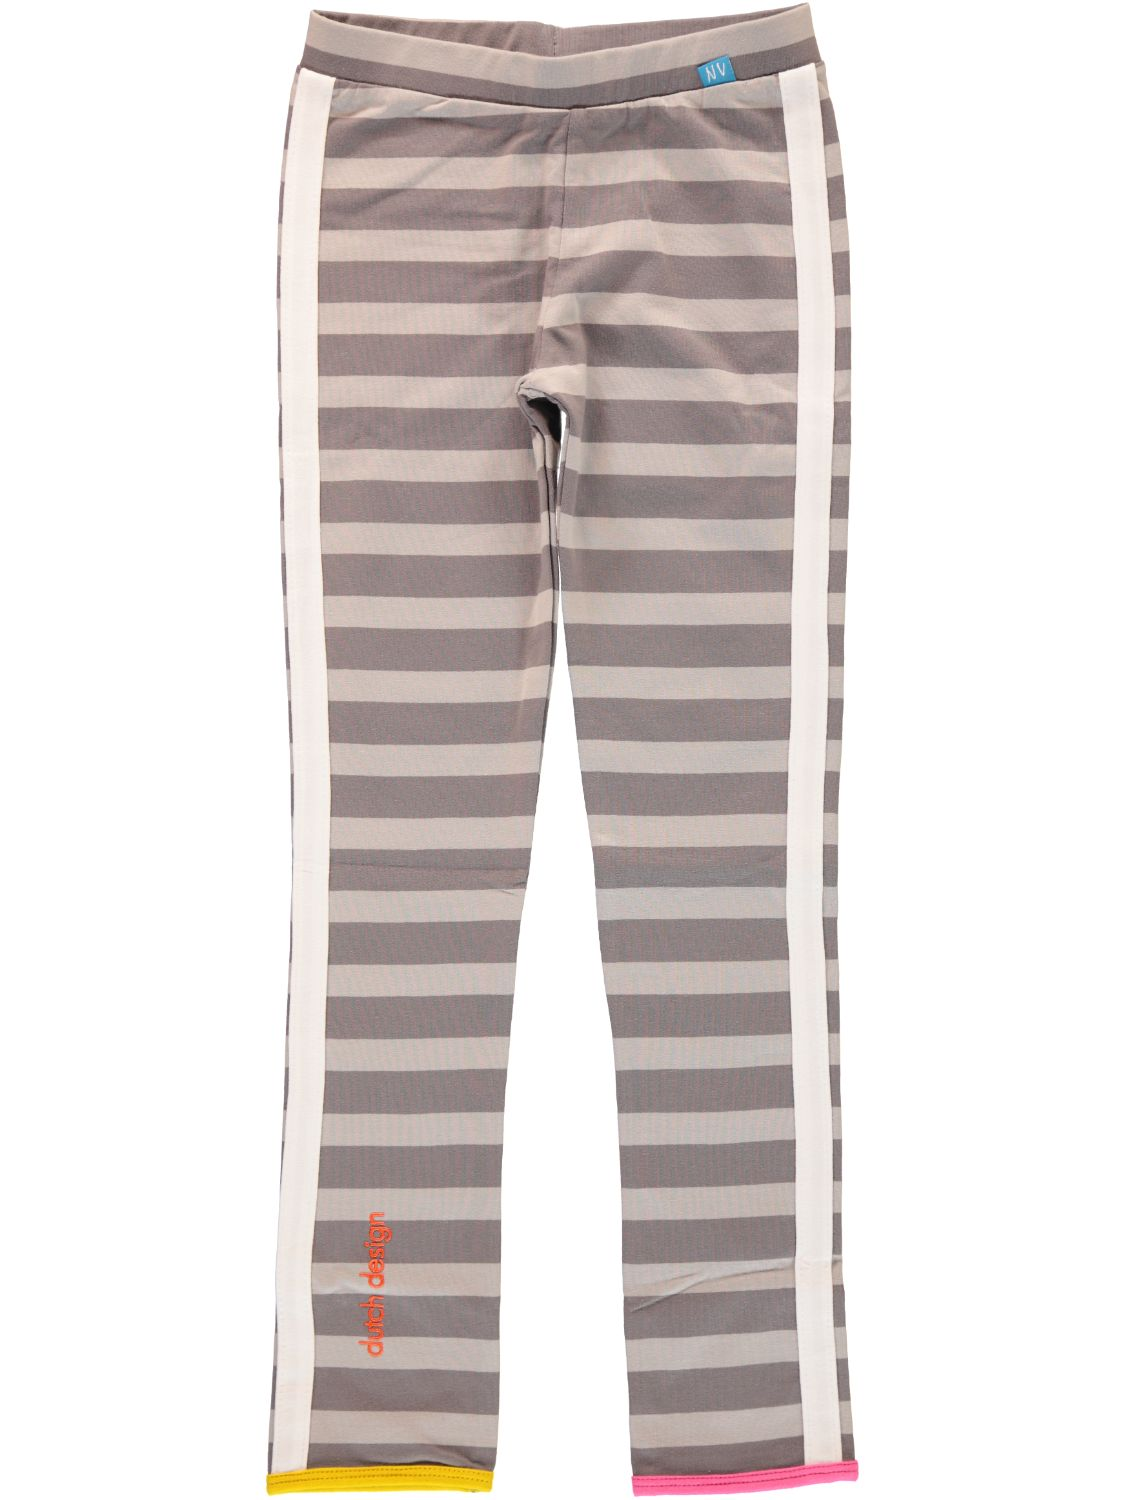 https://myshop.s3-external-3.amazonaws.com/shop3044400.pictures.ninnivi-nvss16-26d-legging-stripe-grey-dark-grey.jpg